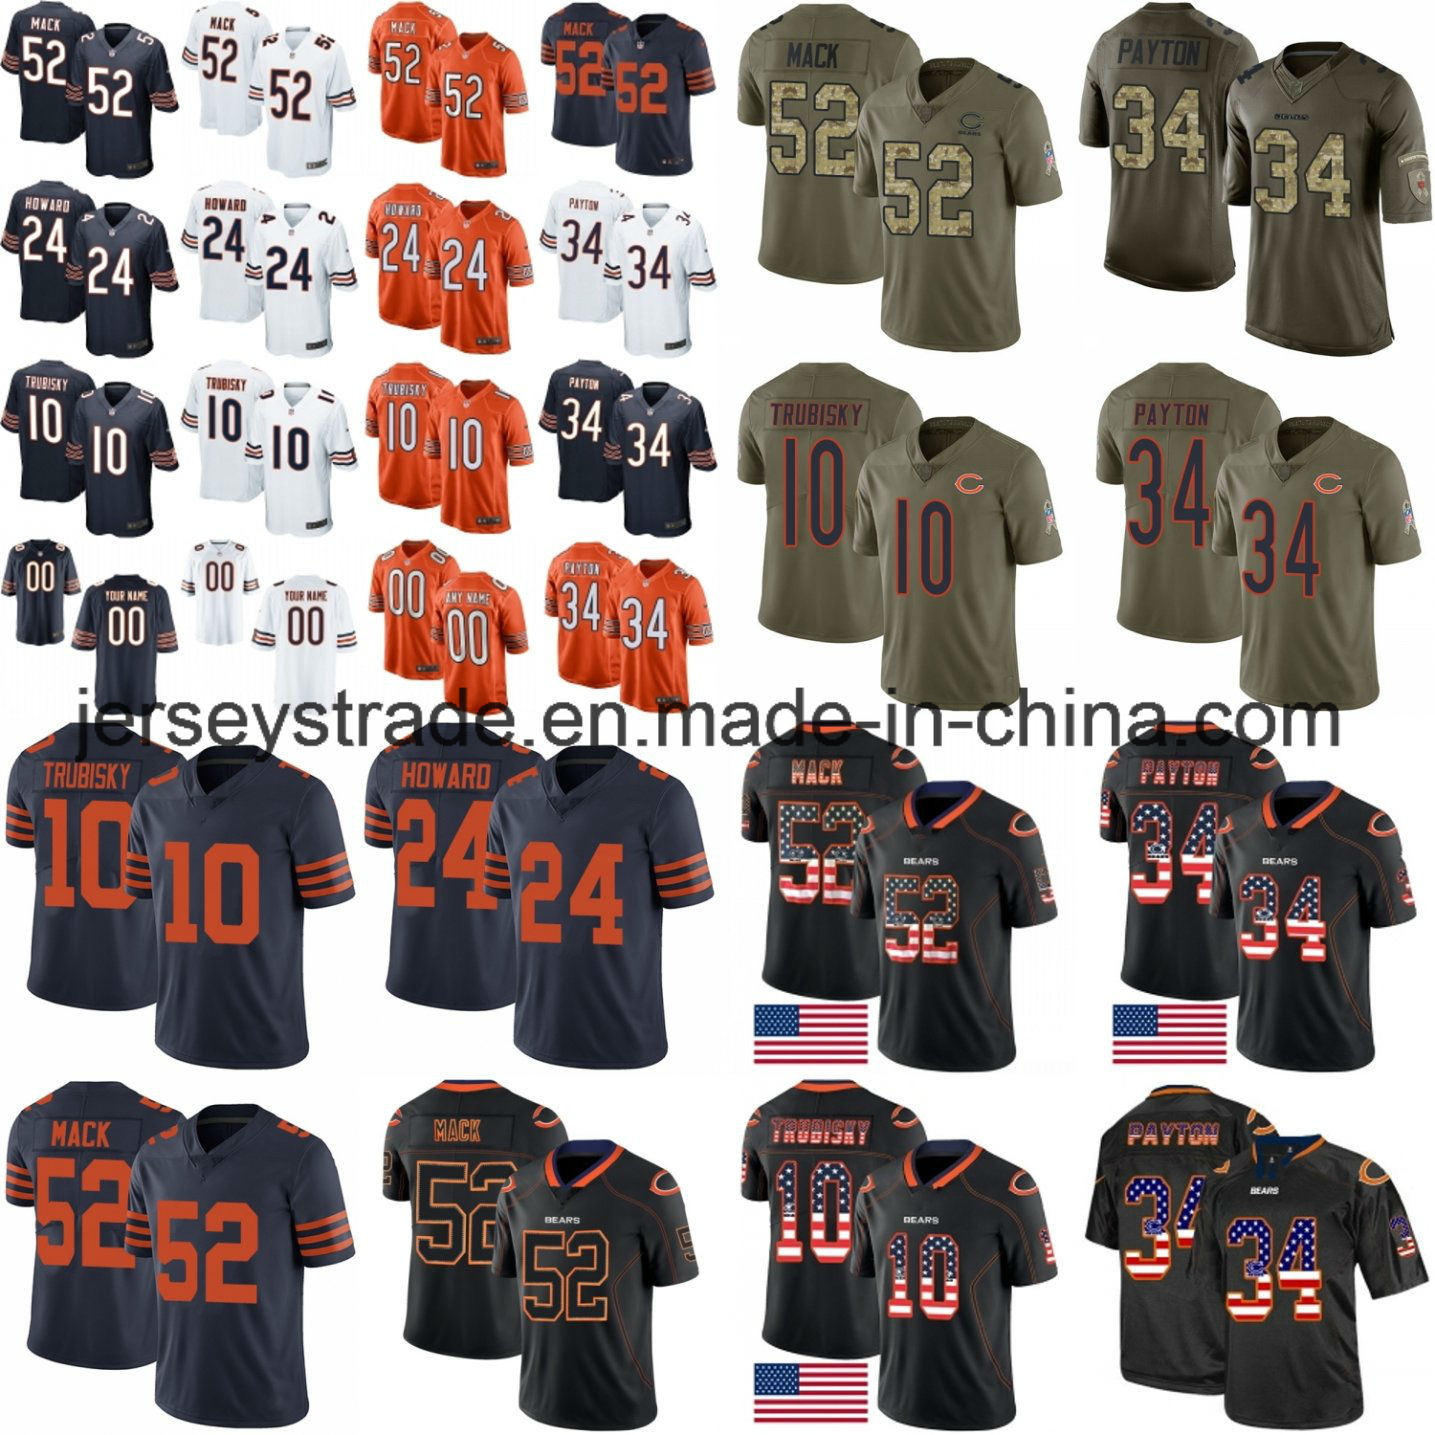 quality design 58367 469fe [Hot Item] Khalil Mack Mitchell Trubisky Jordan Howard Chicago Football  Jerseys